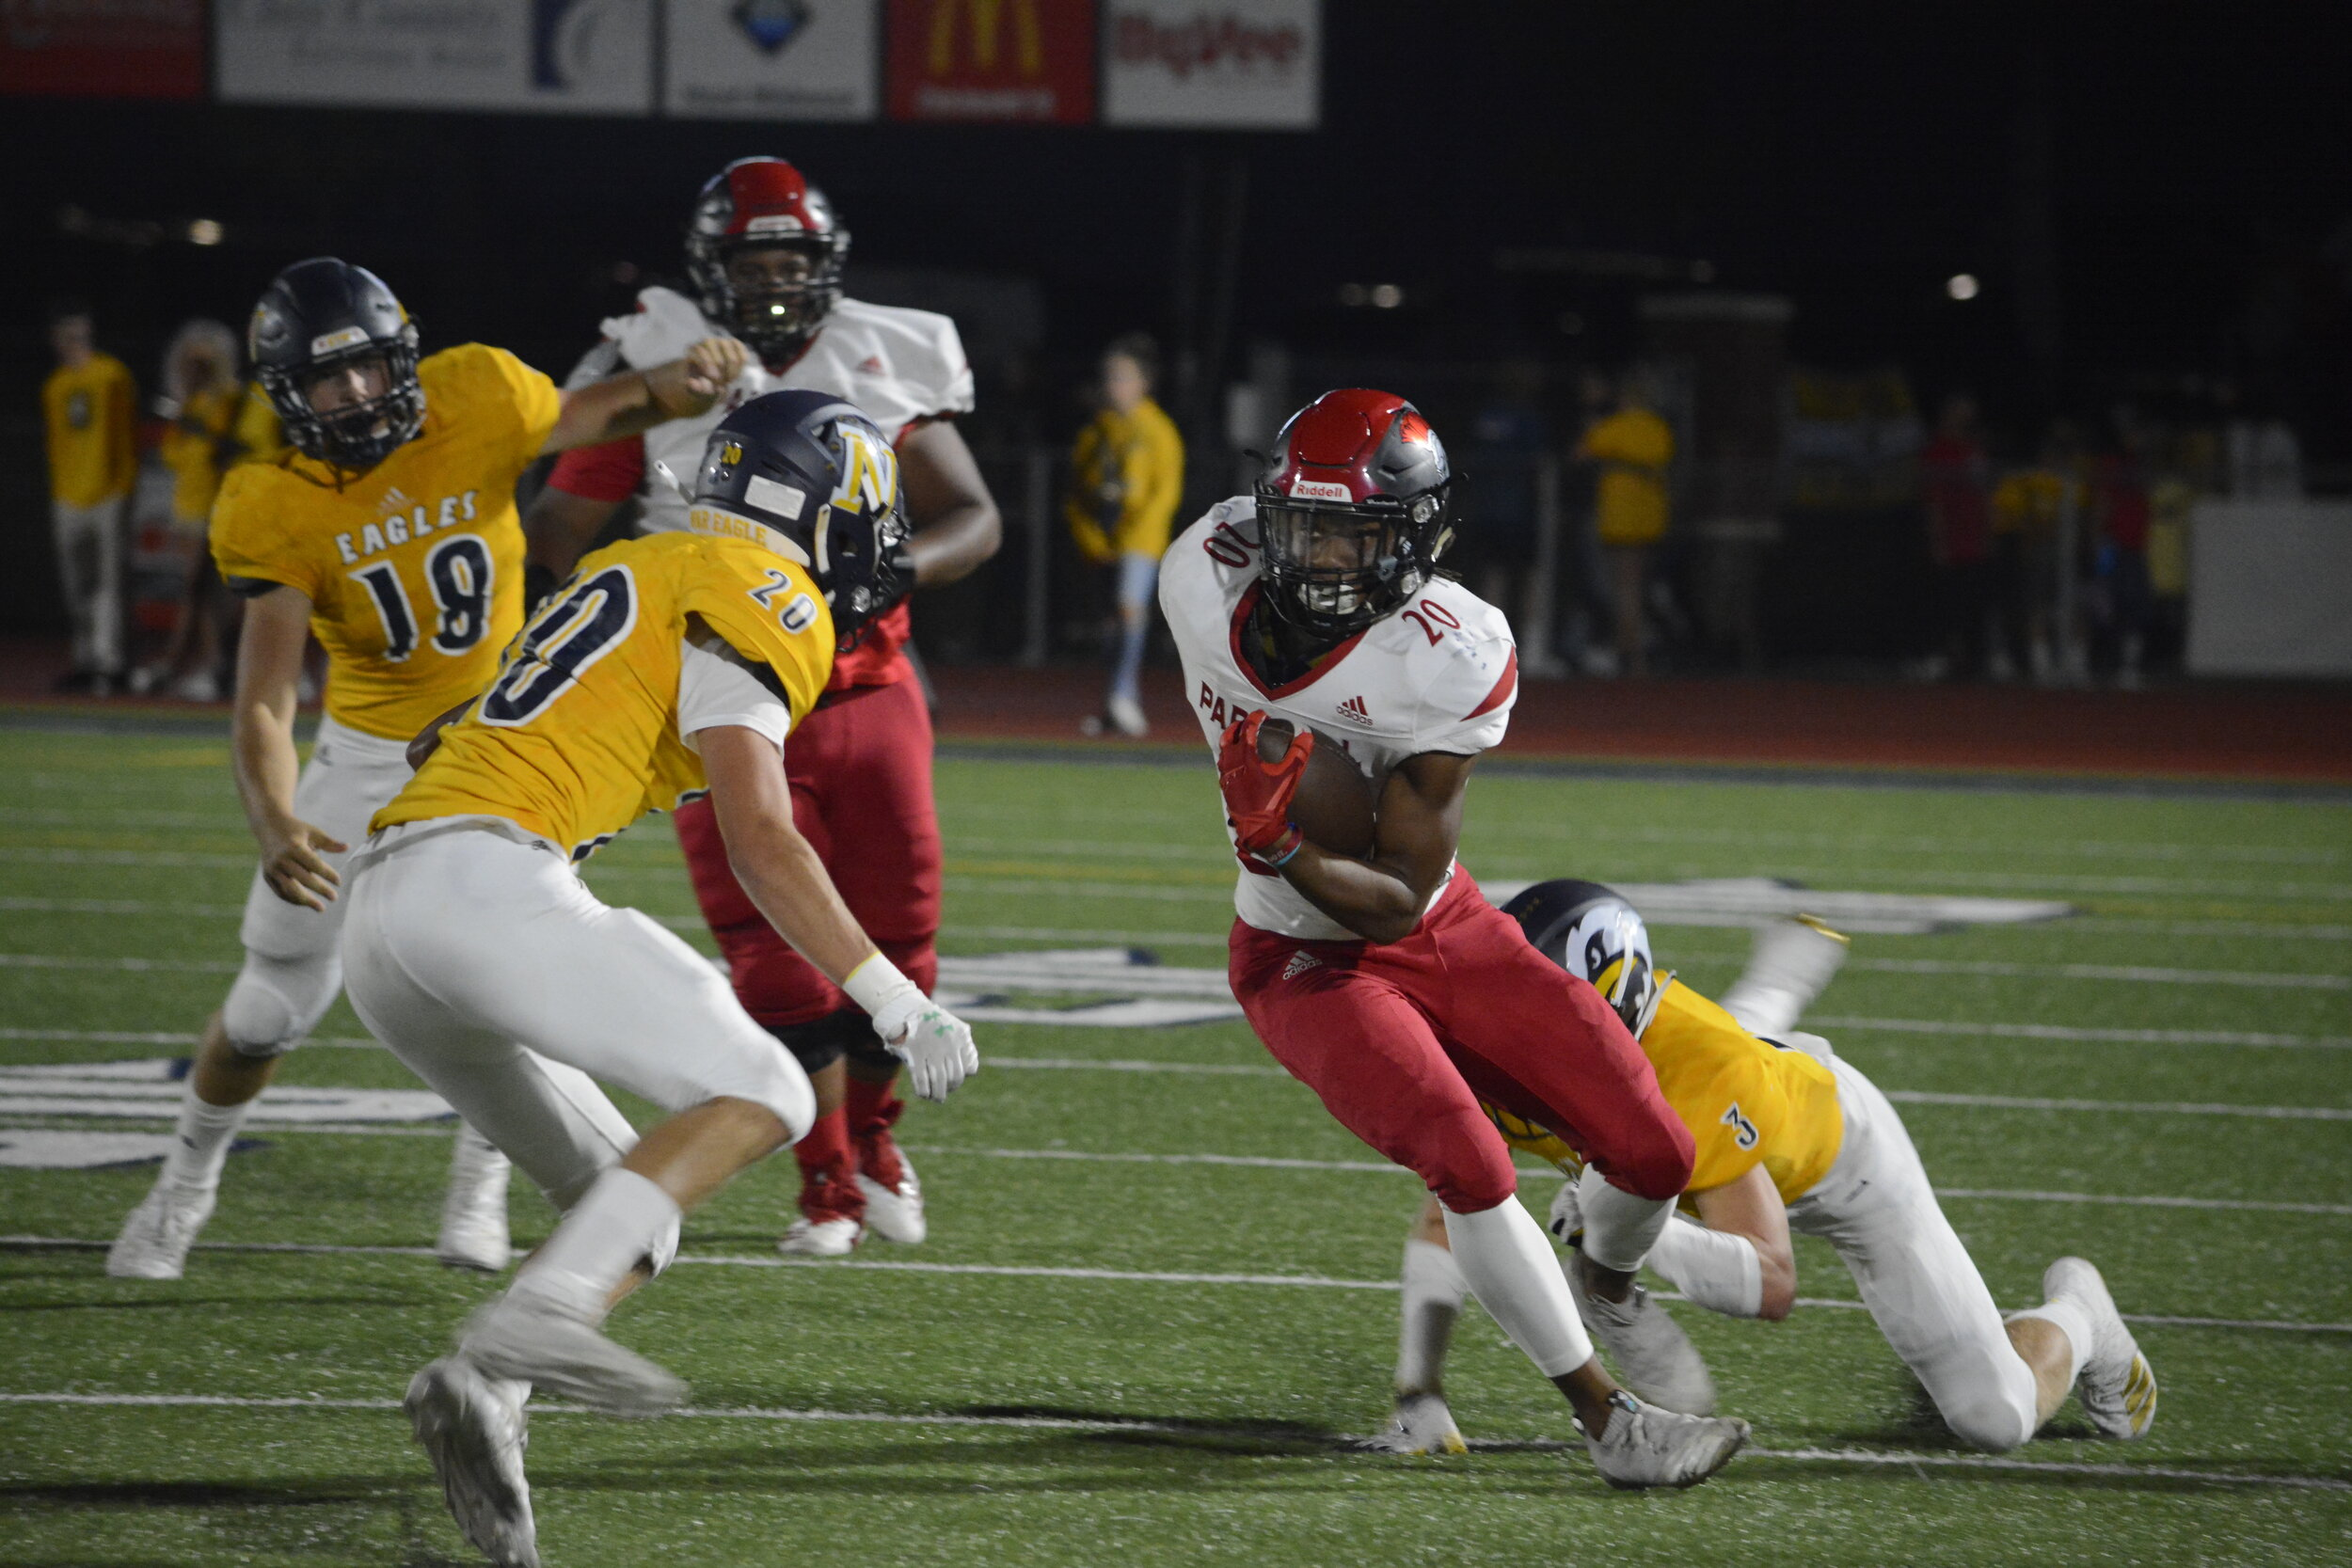 ADAM BURNS/Liberty Courier-Tribune  Park Hill's Darion Neal carries the ball against Liberty North in a game on Friday, Sept. 13 at Zaxby's Field in Liberty.